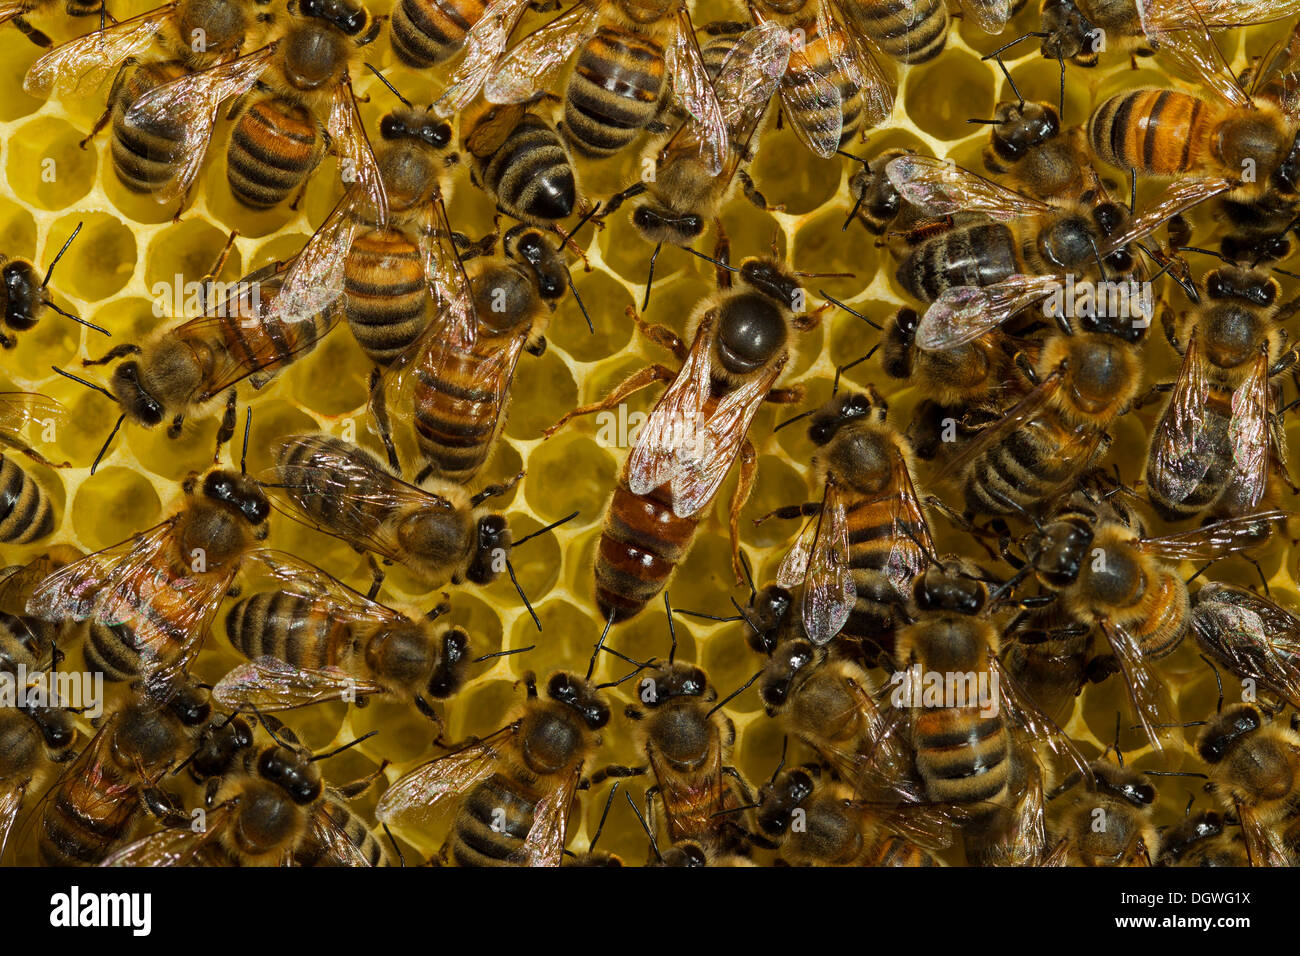 Western Honey Bees (Apis mellifera), queen on honeycomb surrounded by workers, Thuringia, Germany - Stock Image